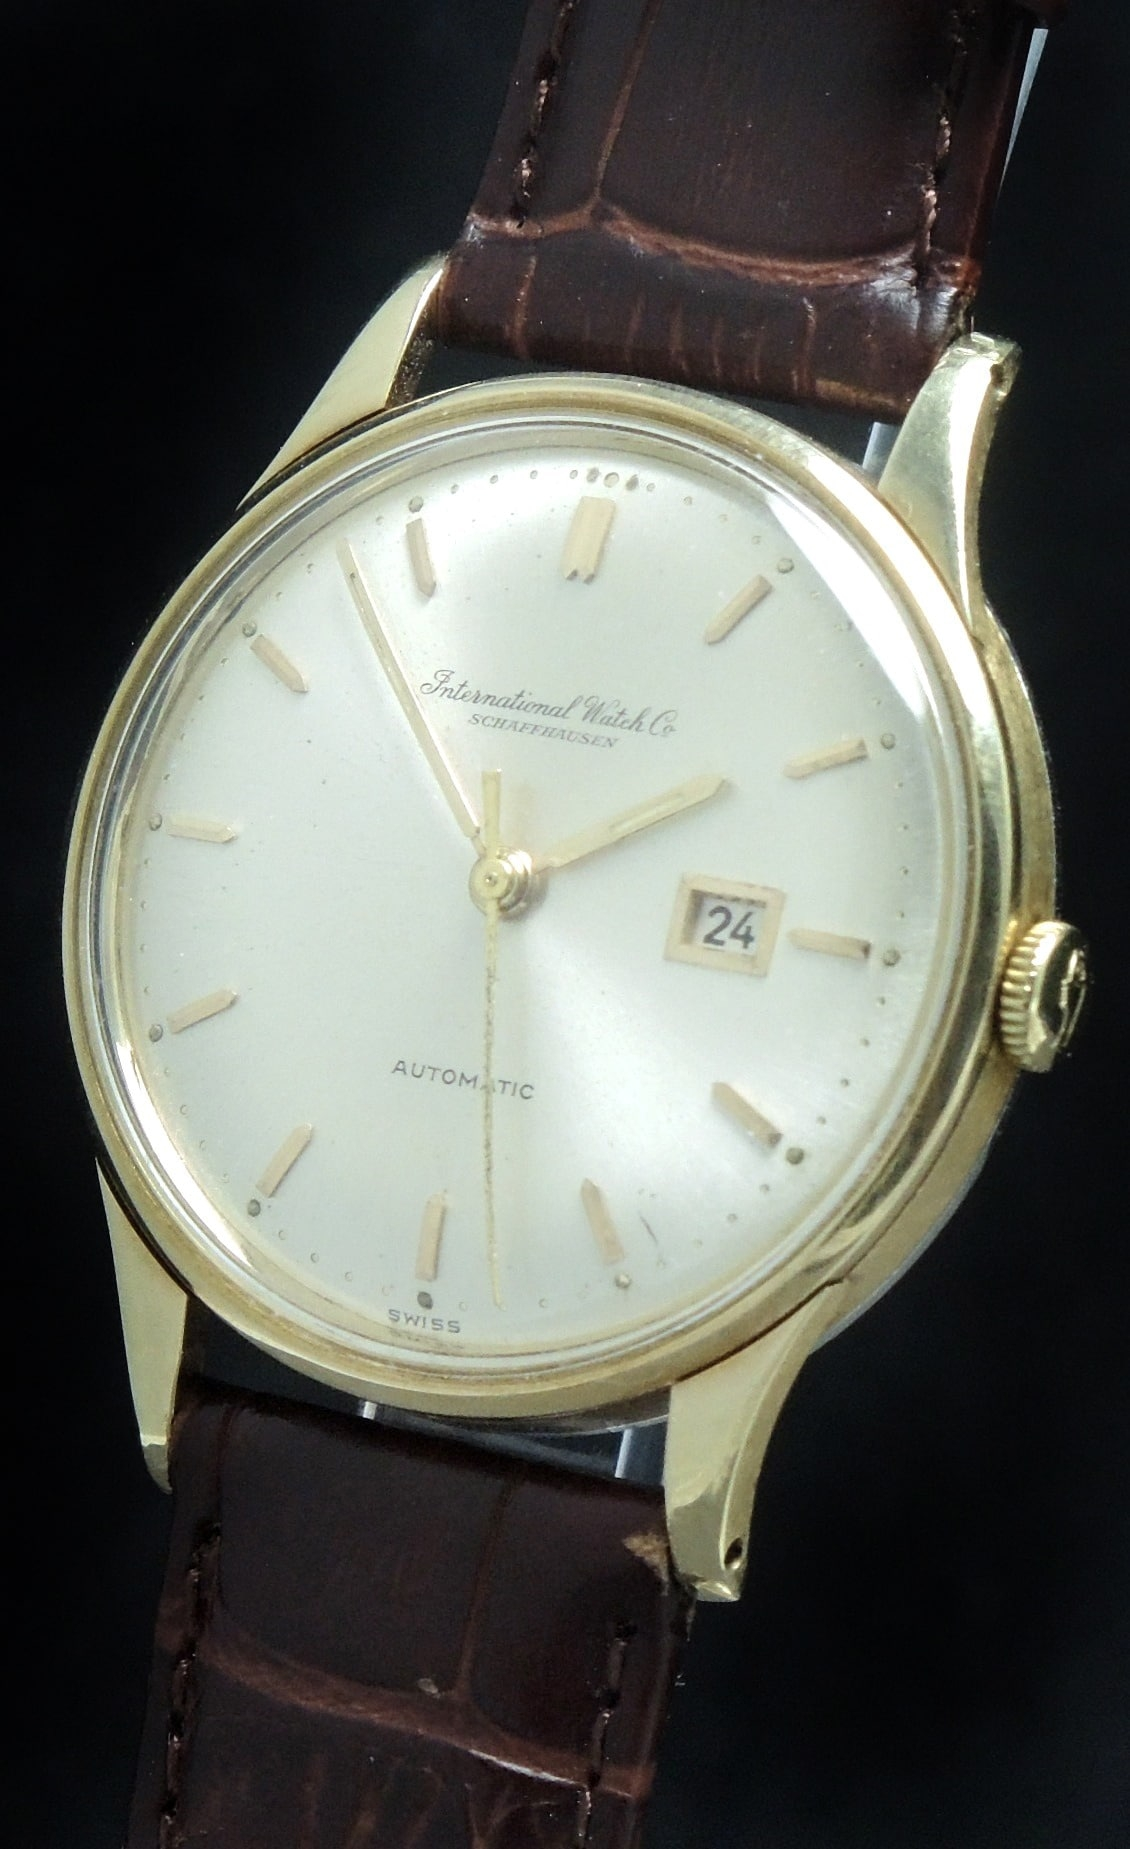 Sell or Pawn Your IWC Watch